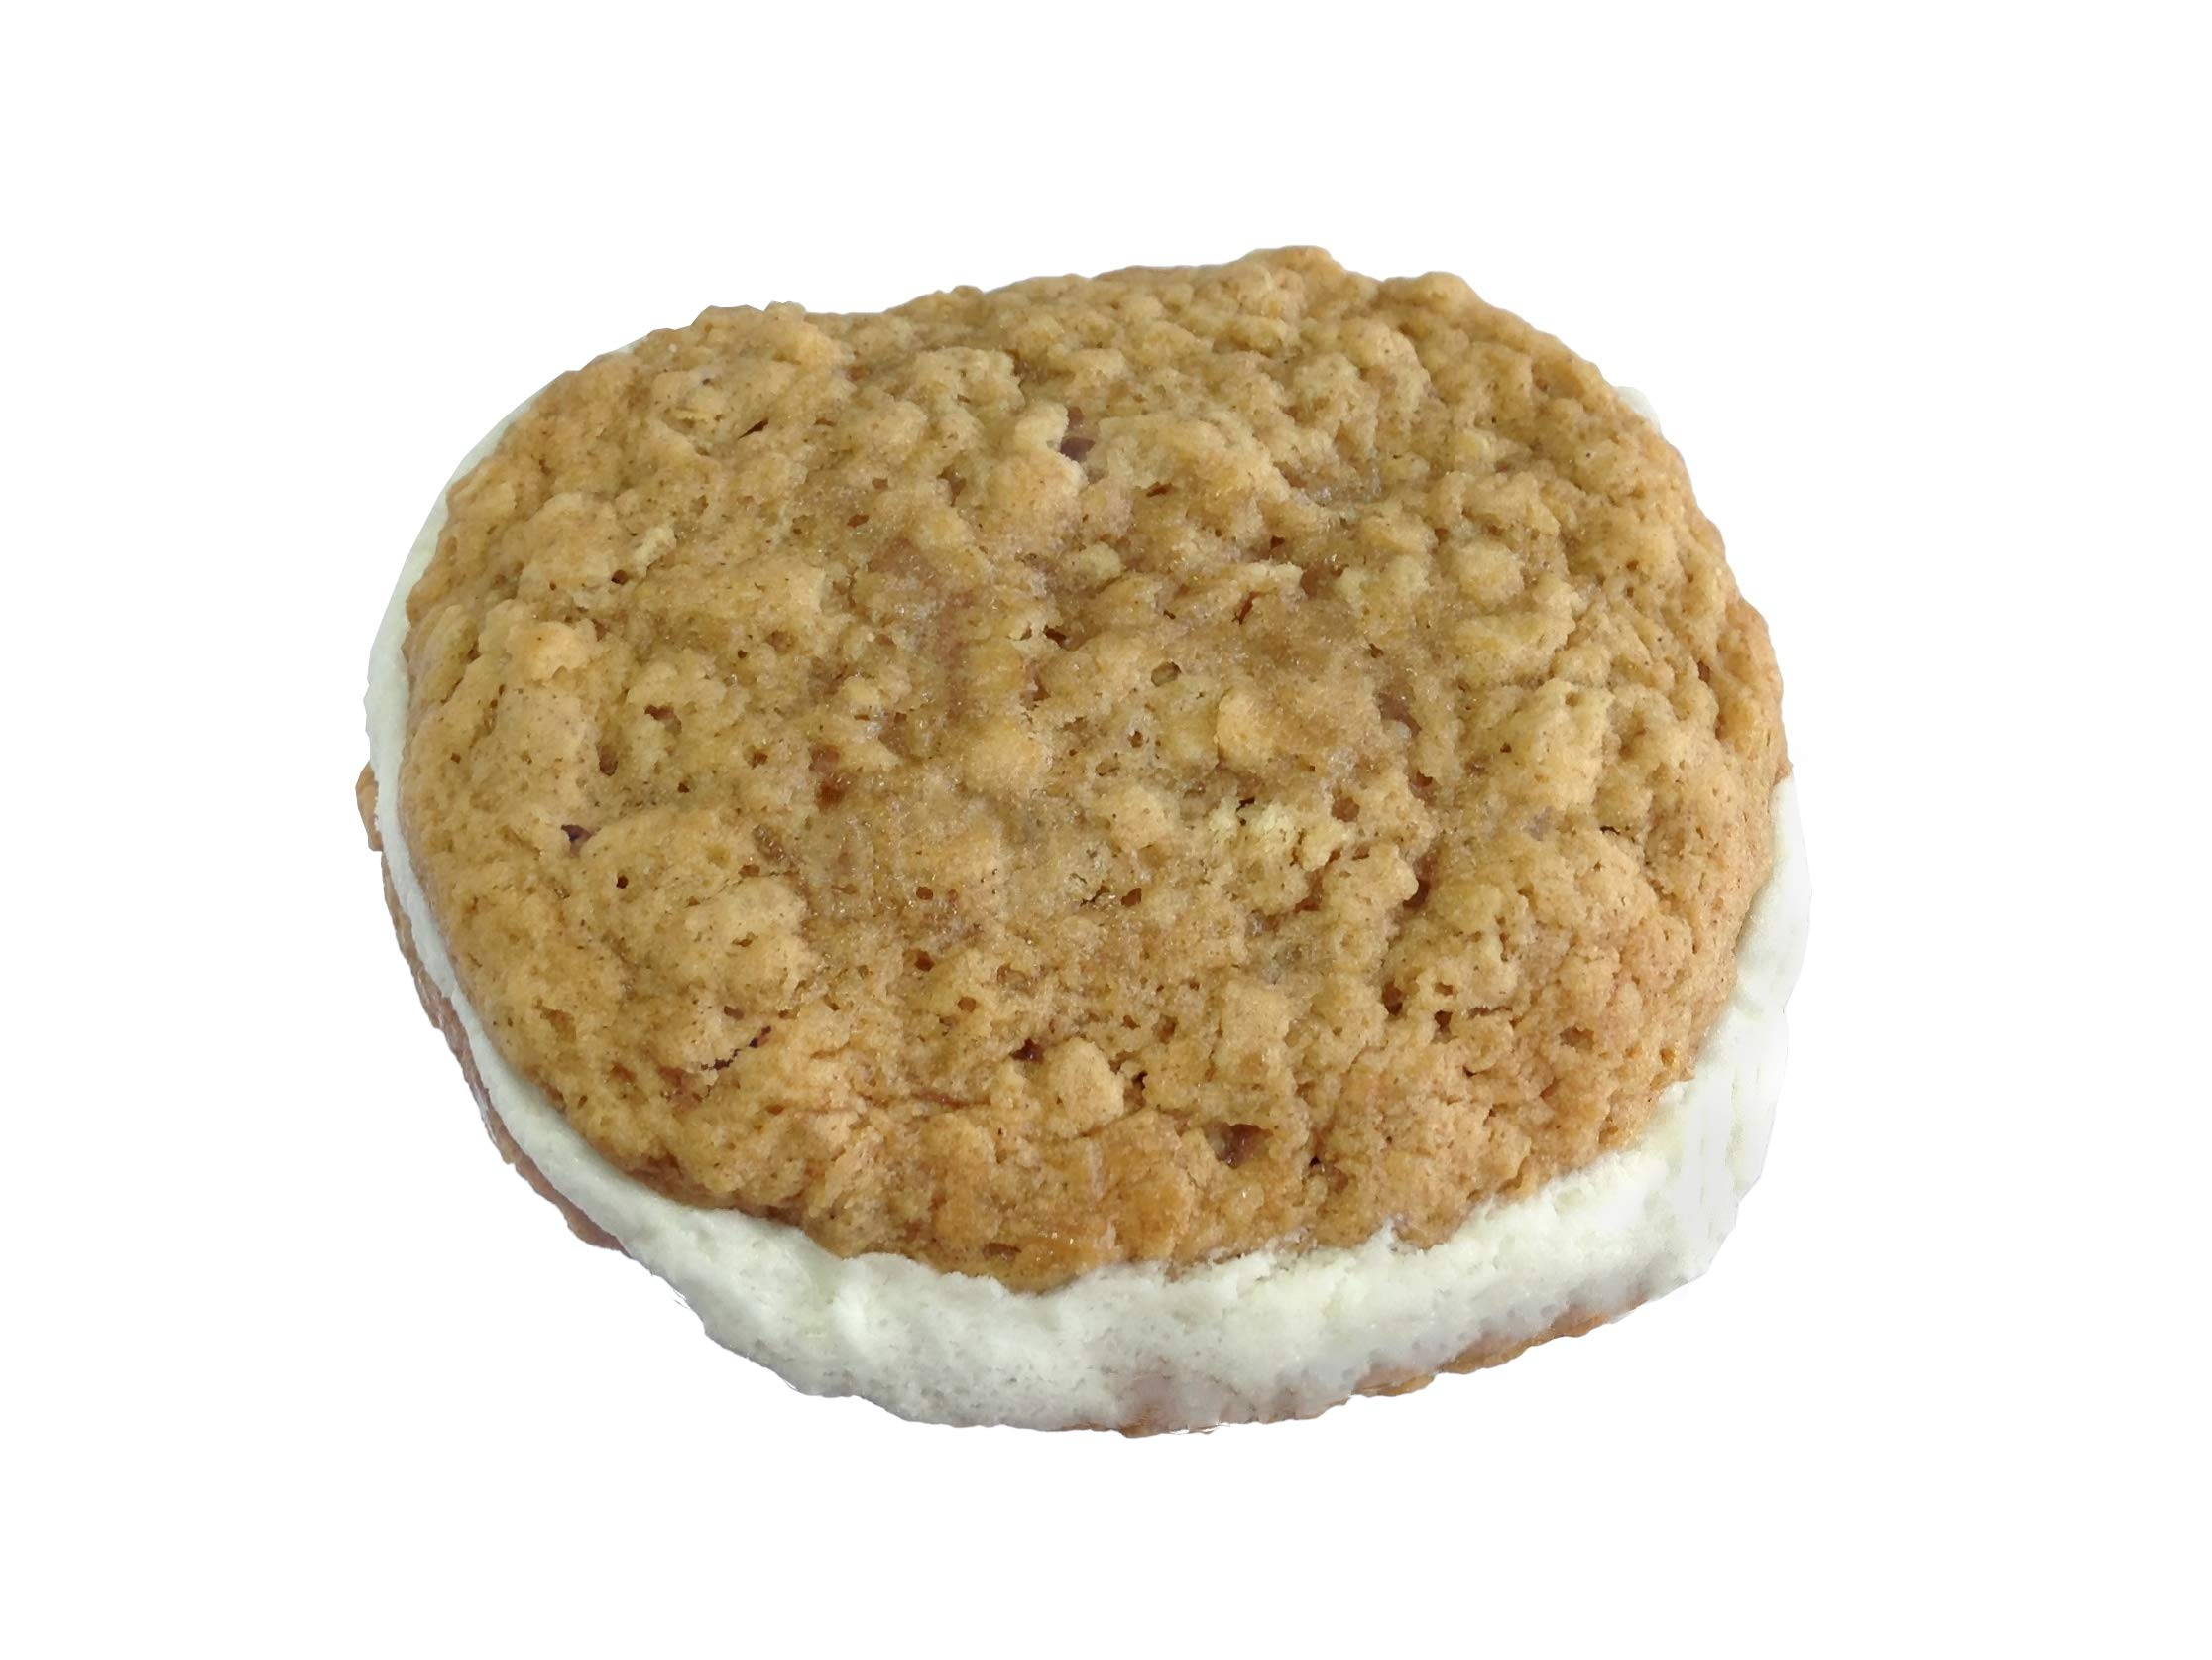 Bird-in-Hand Bake Shop Homemade Whoopie Pies, Oatmeal, Favorite Amish Food (Pack of 18) by AmishTastes